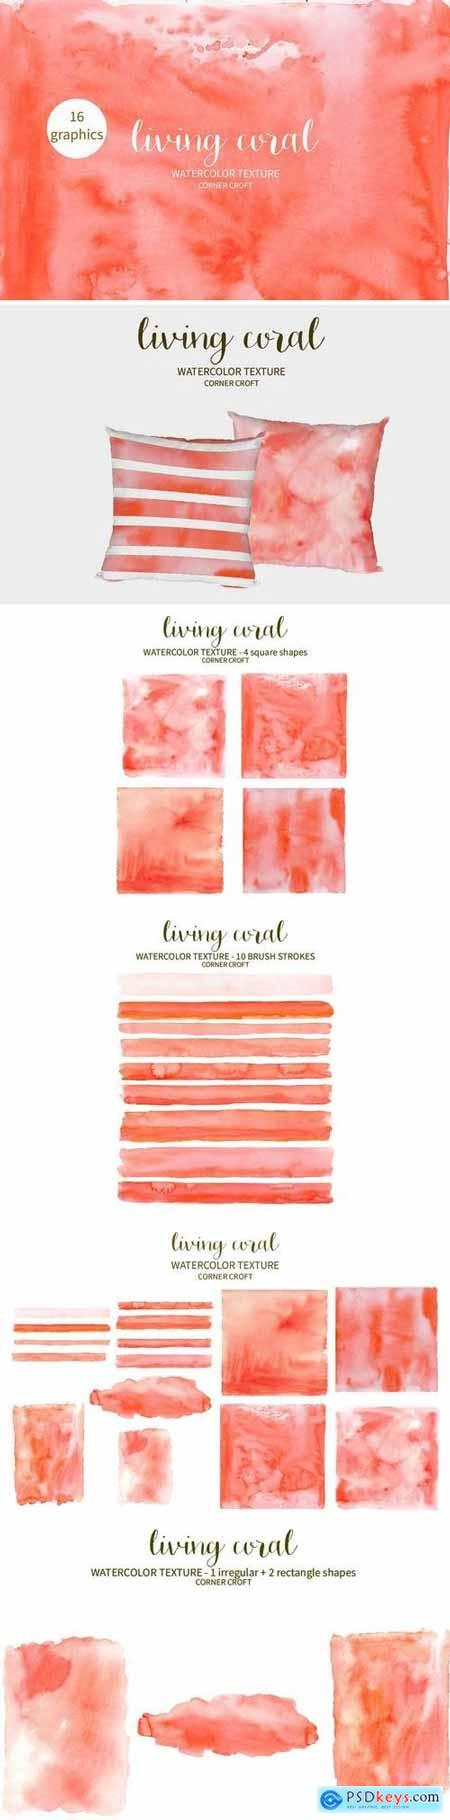 Watercolor Texture Living Coral